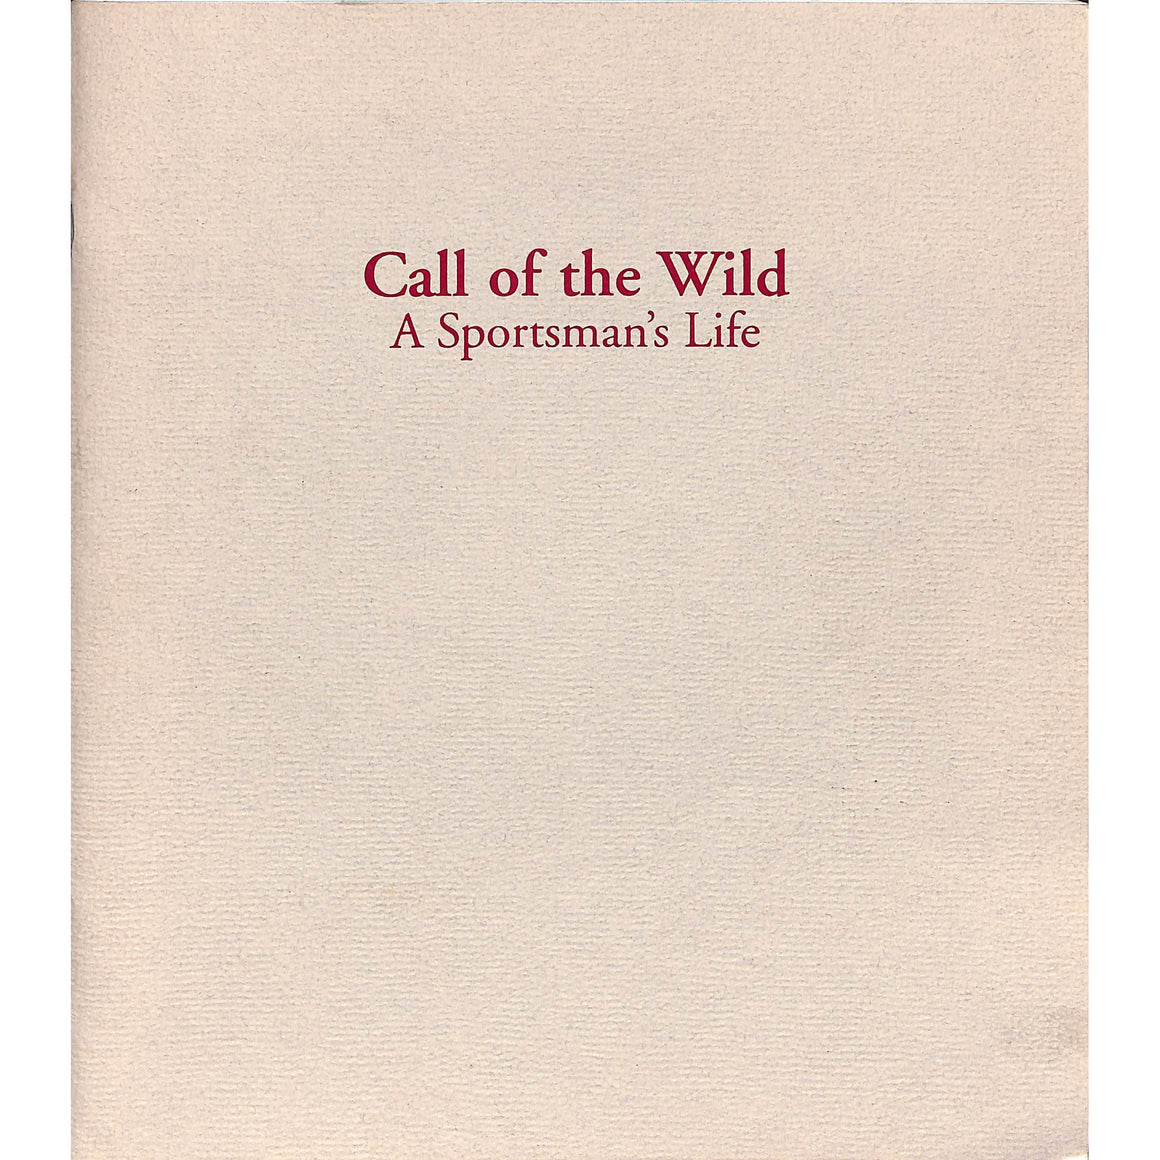 Call Of The Wild: A Sportsman's Life